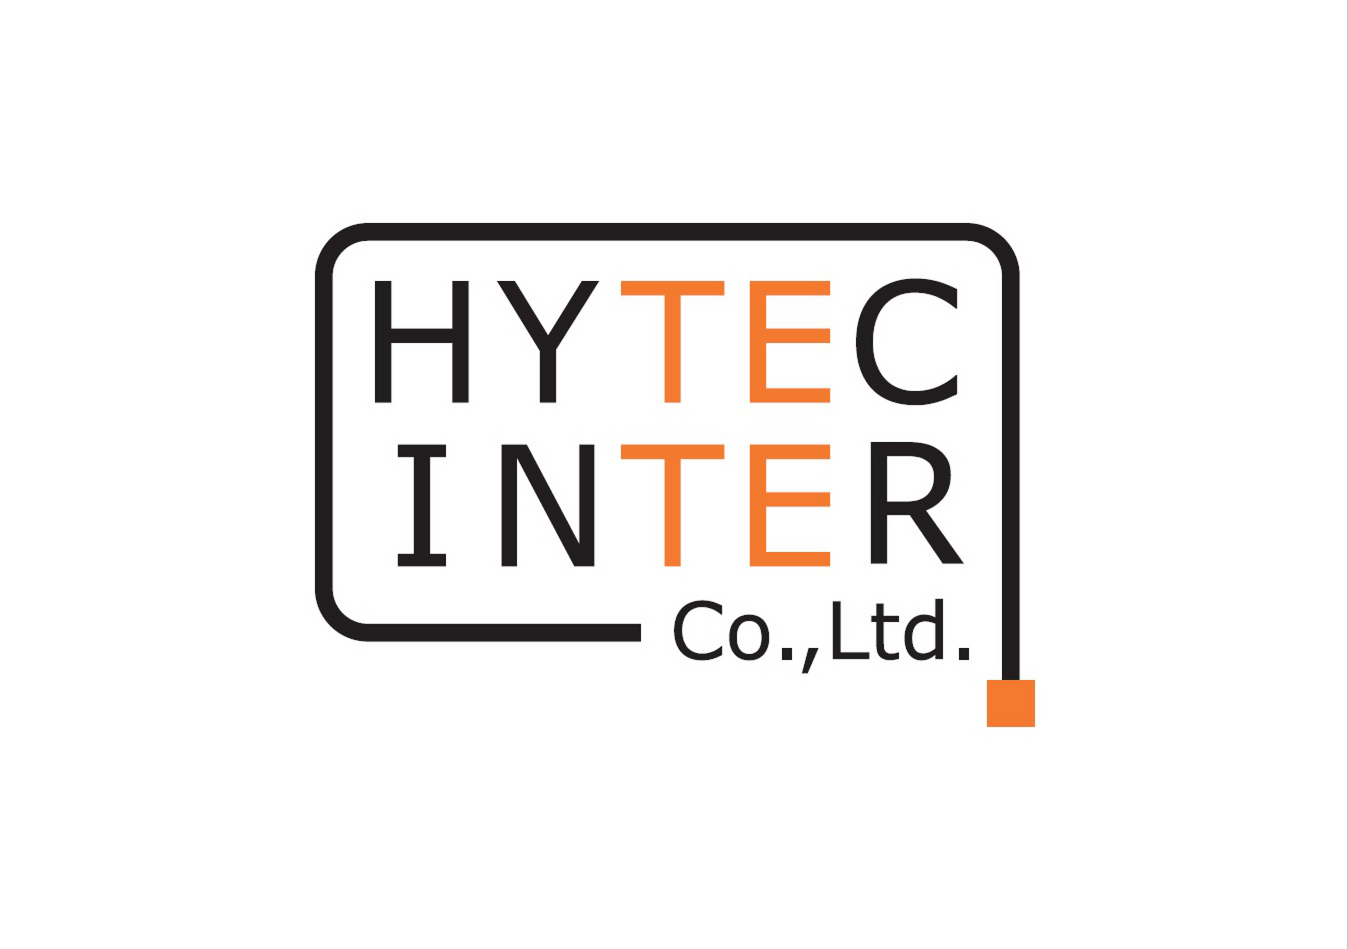 Hytec Inter Co. Ltd.